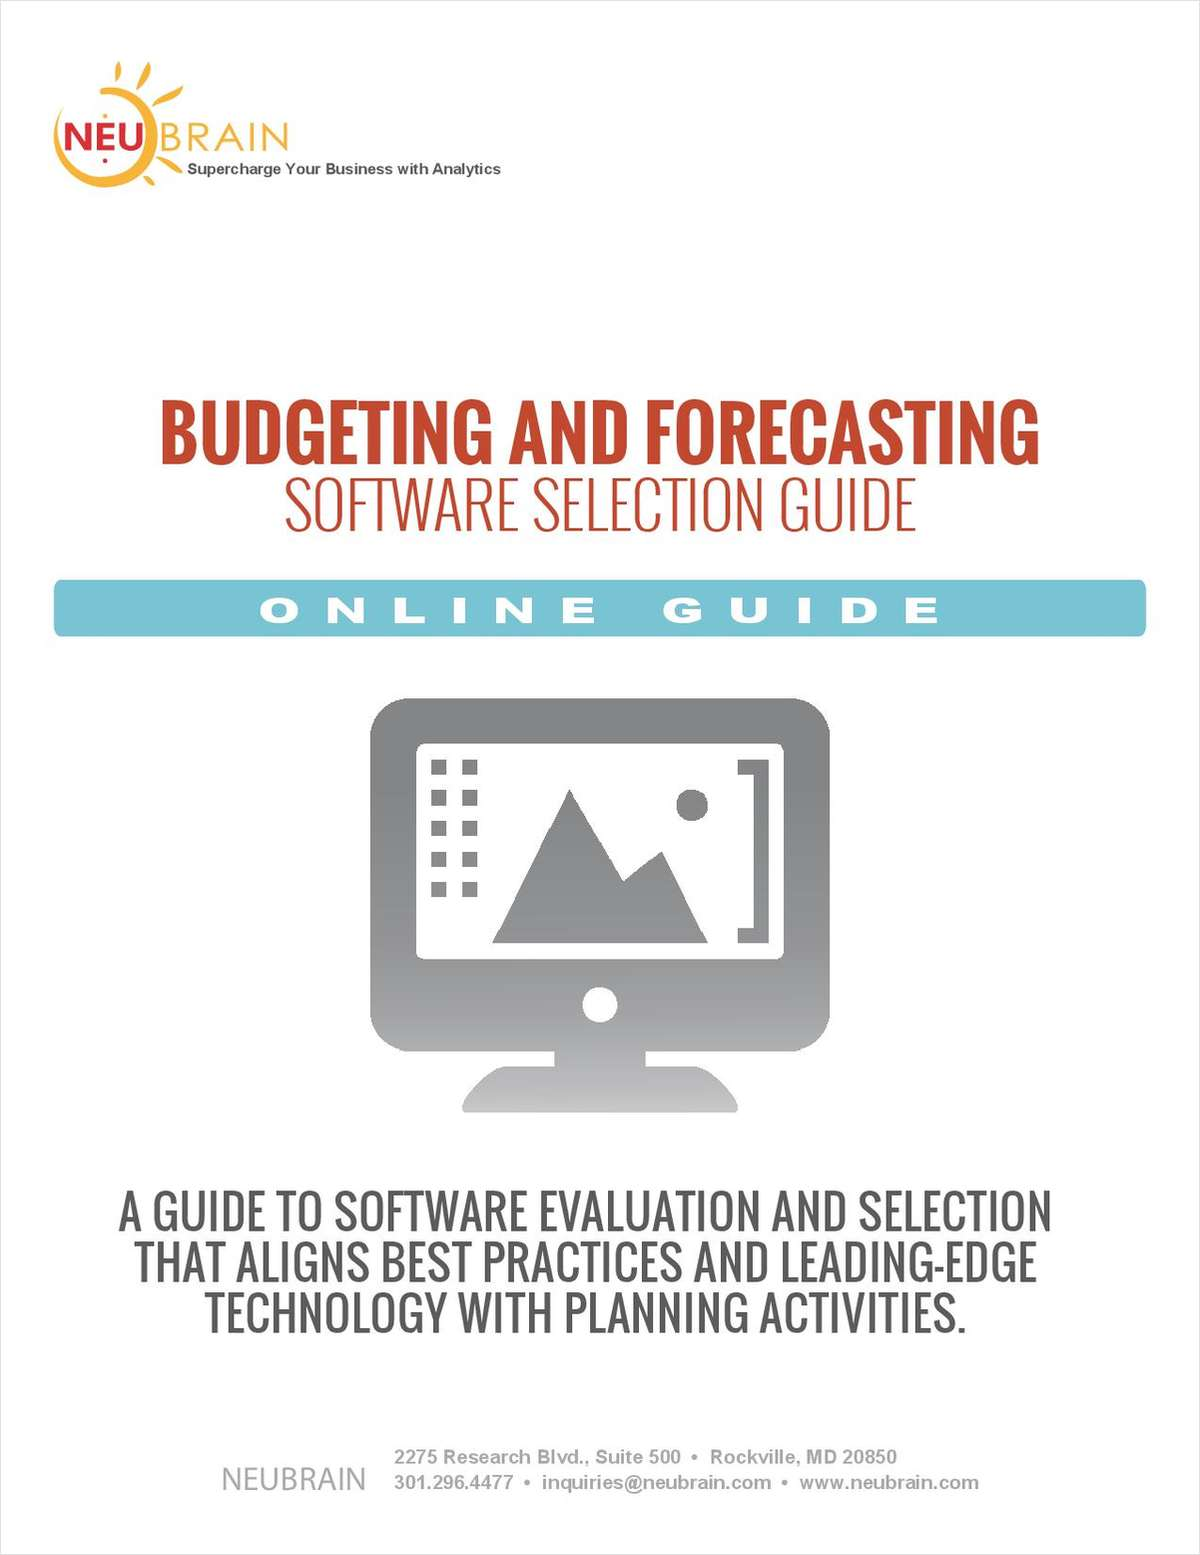 Budgeting and Forecasting Software Evaluation Guide